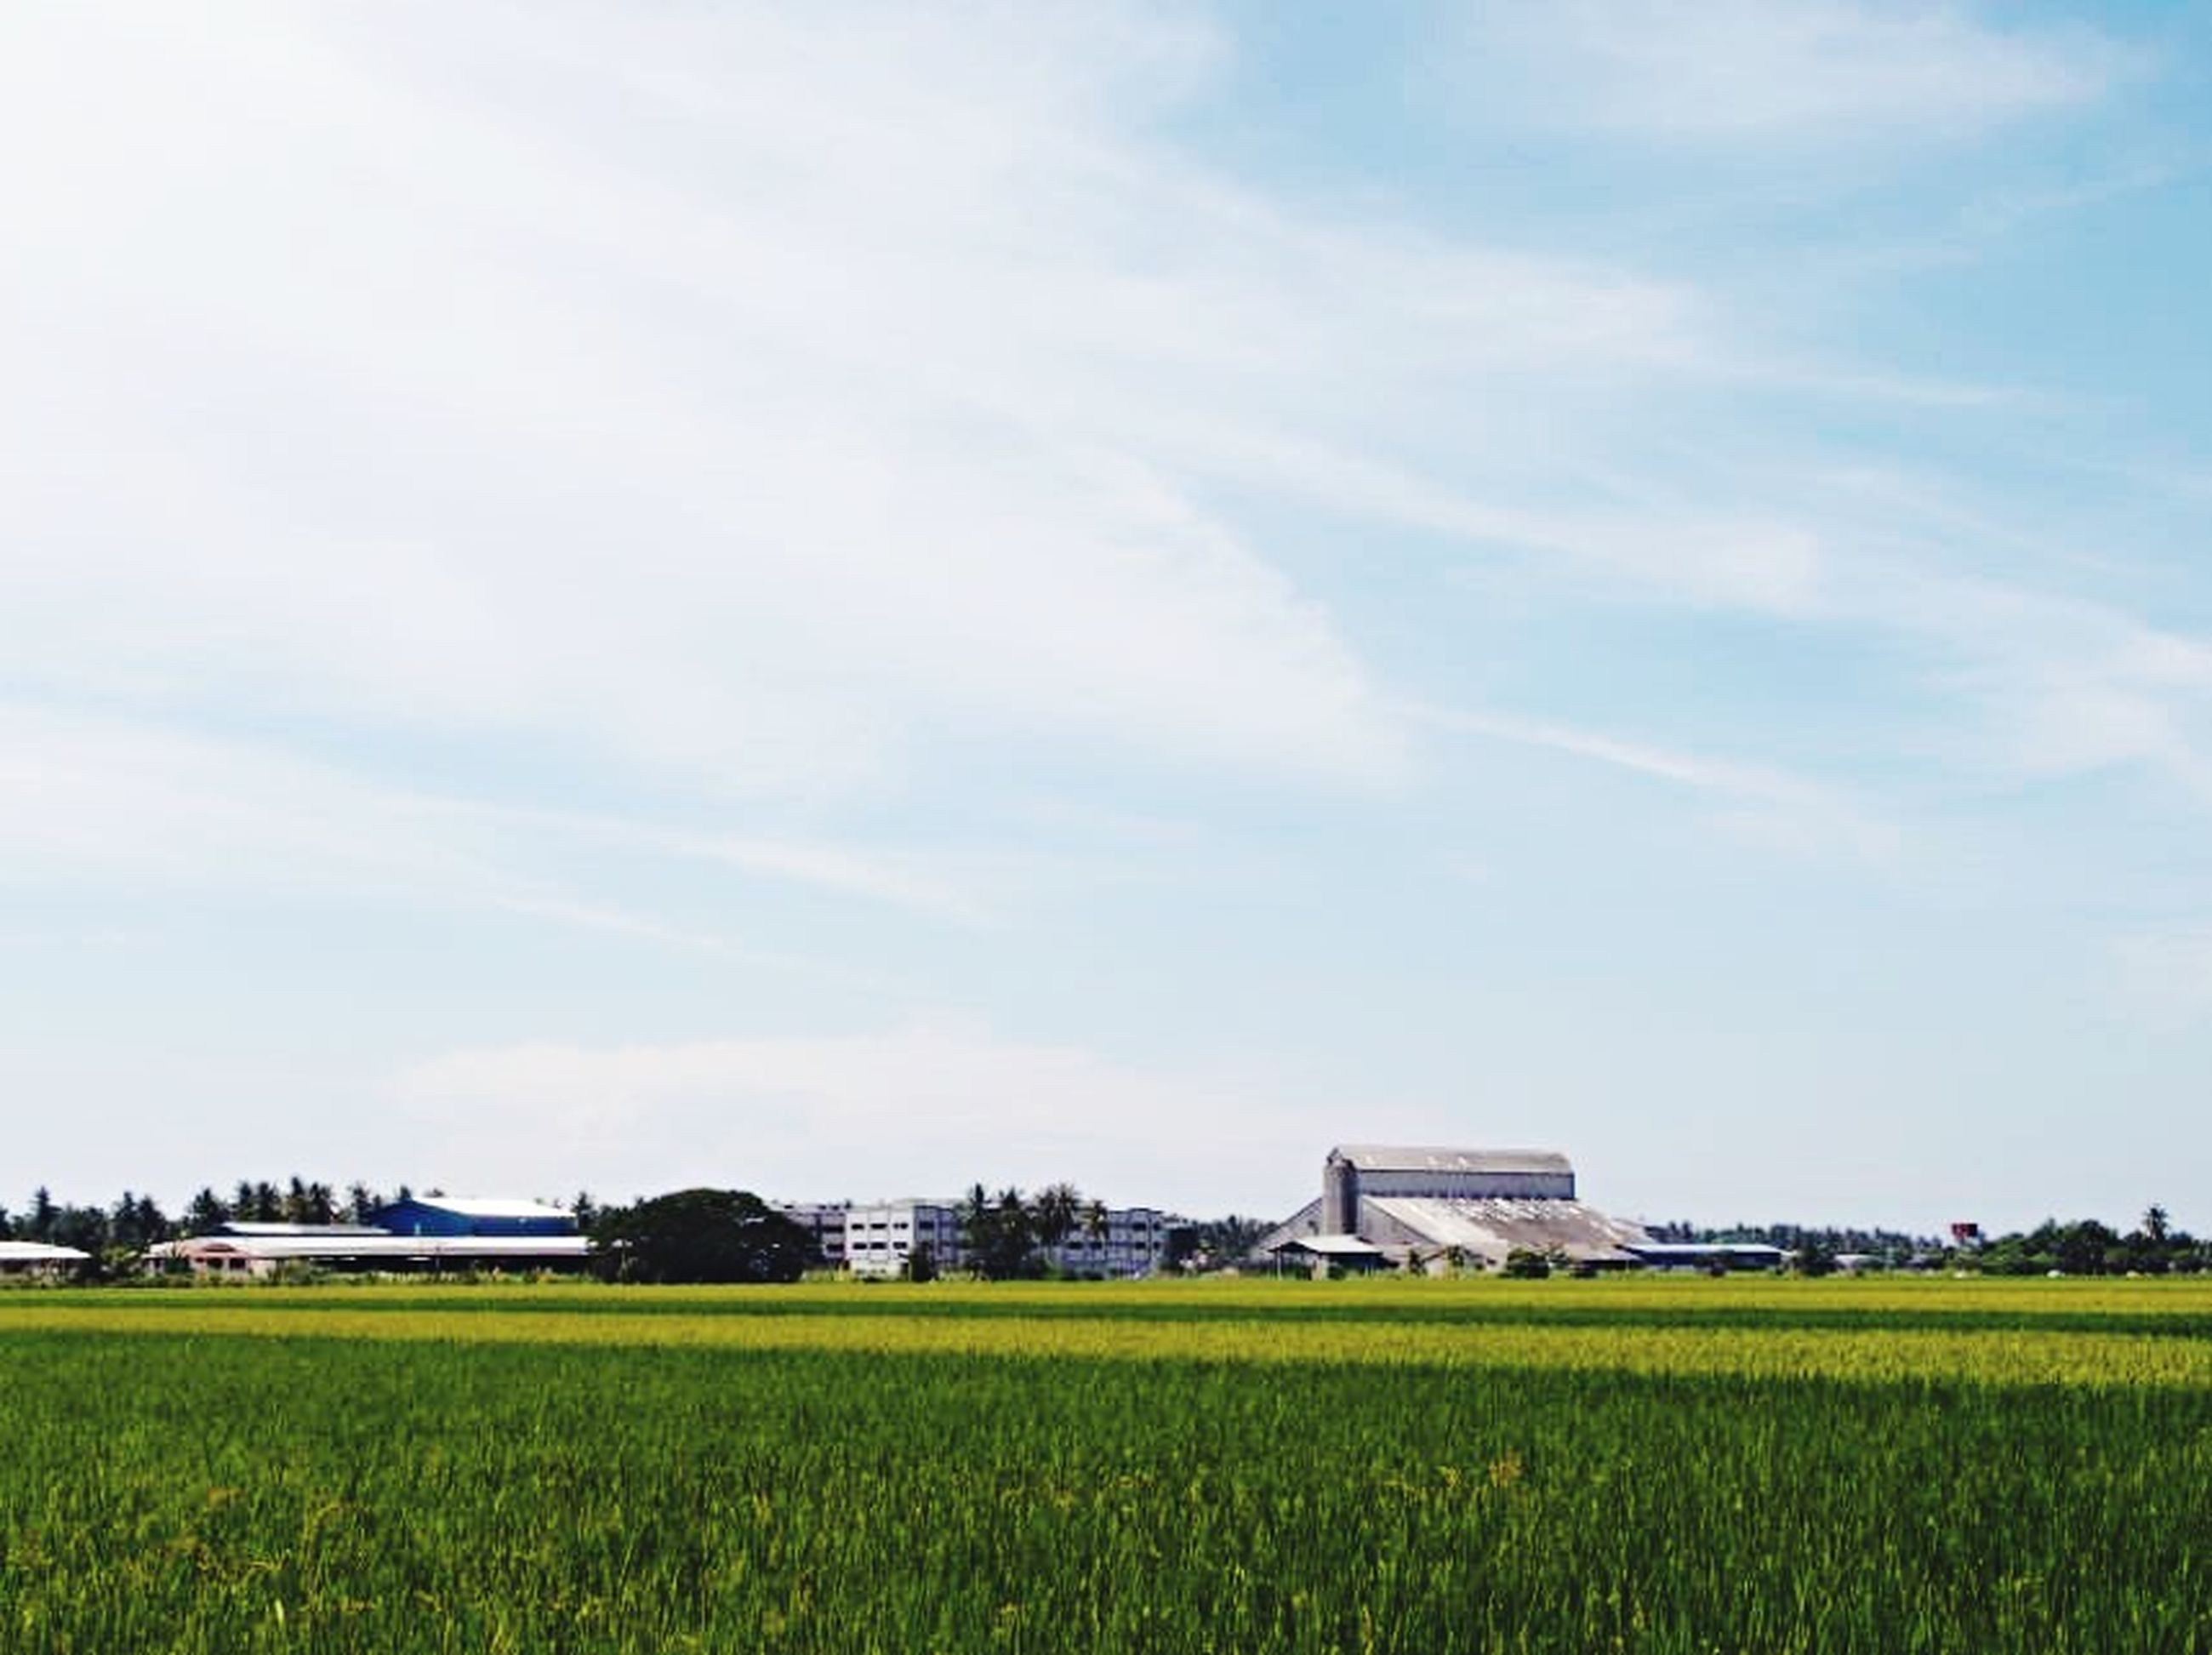 field, agriculture, rural scene, farm, growth, landscape, building exterior, architecture, crop, built structure, sky, beauty in nature, yellow, nature, cultivated land, grass, tranquil scene, tranquility, flower, green color